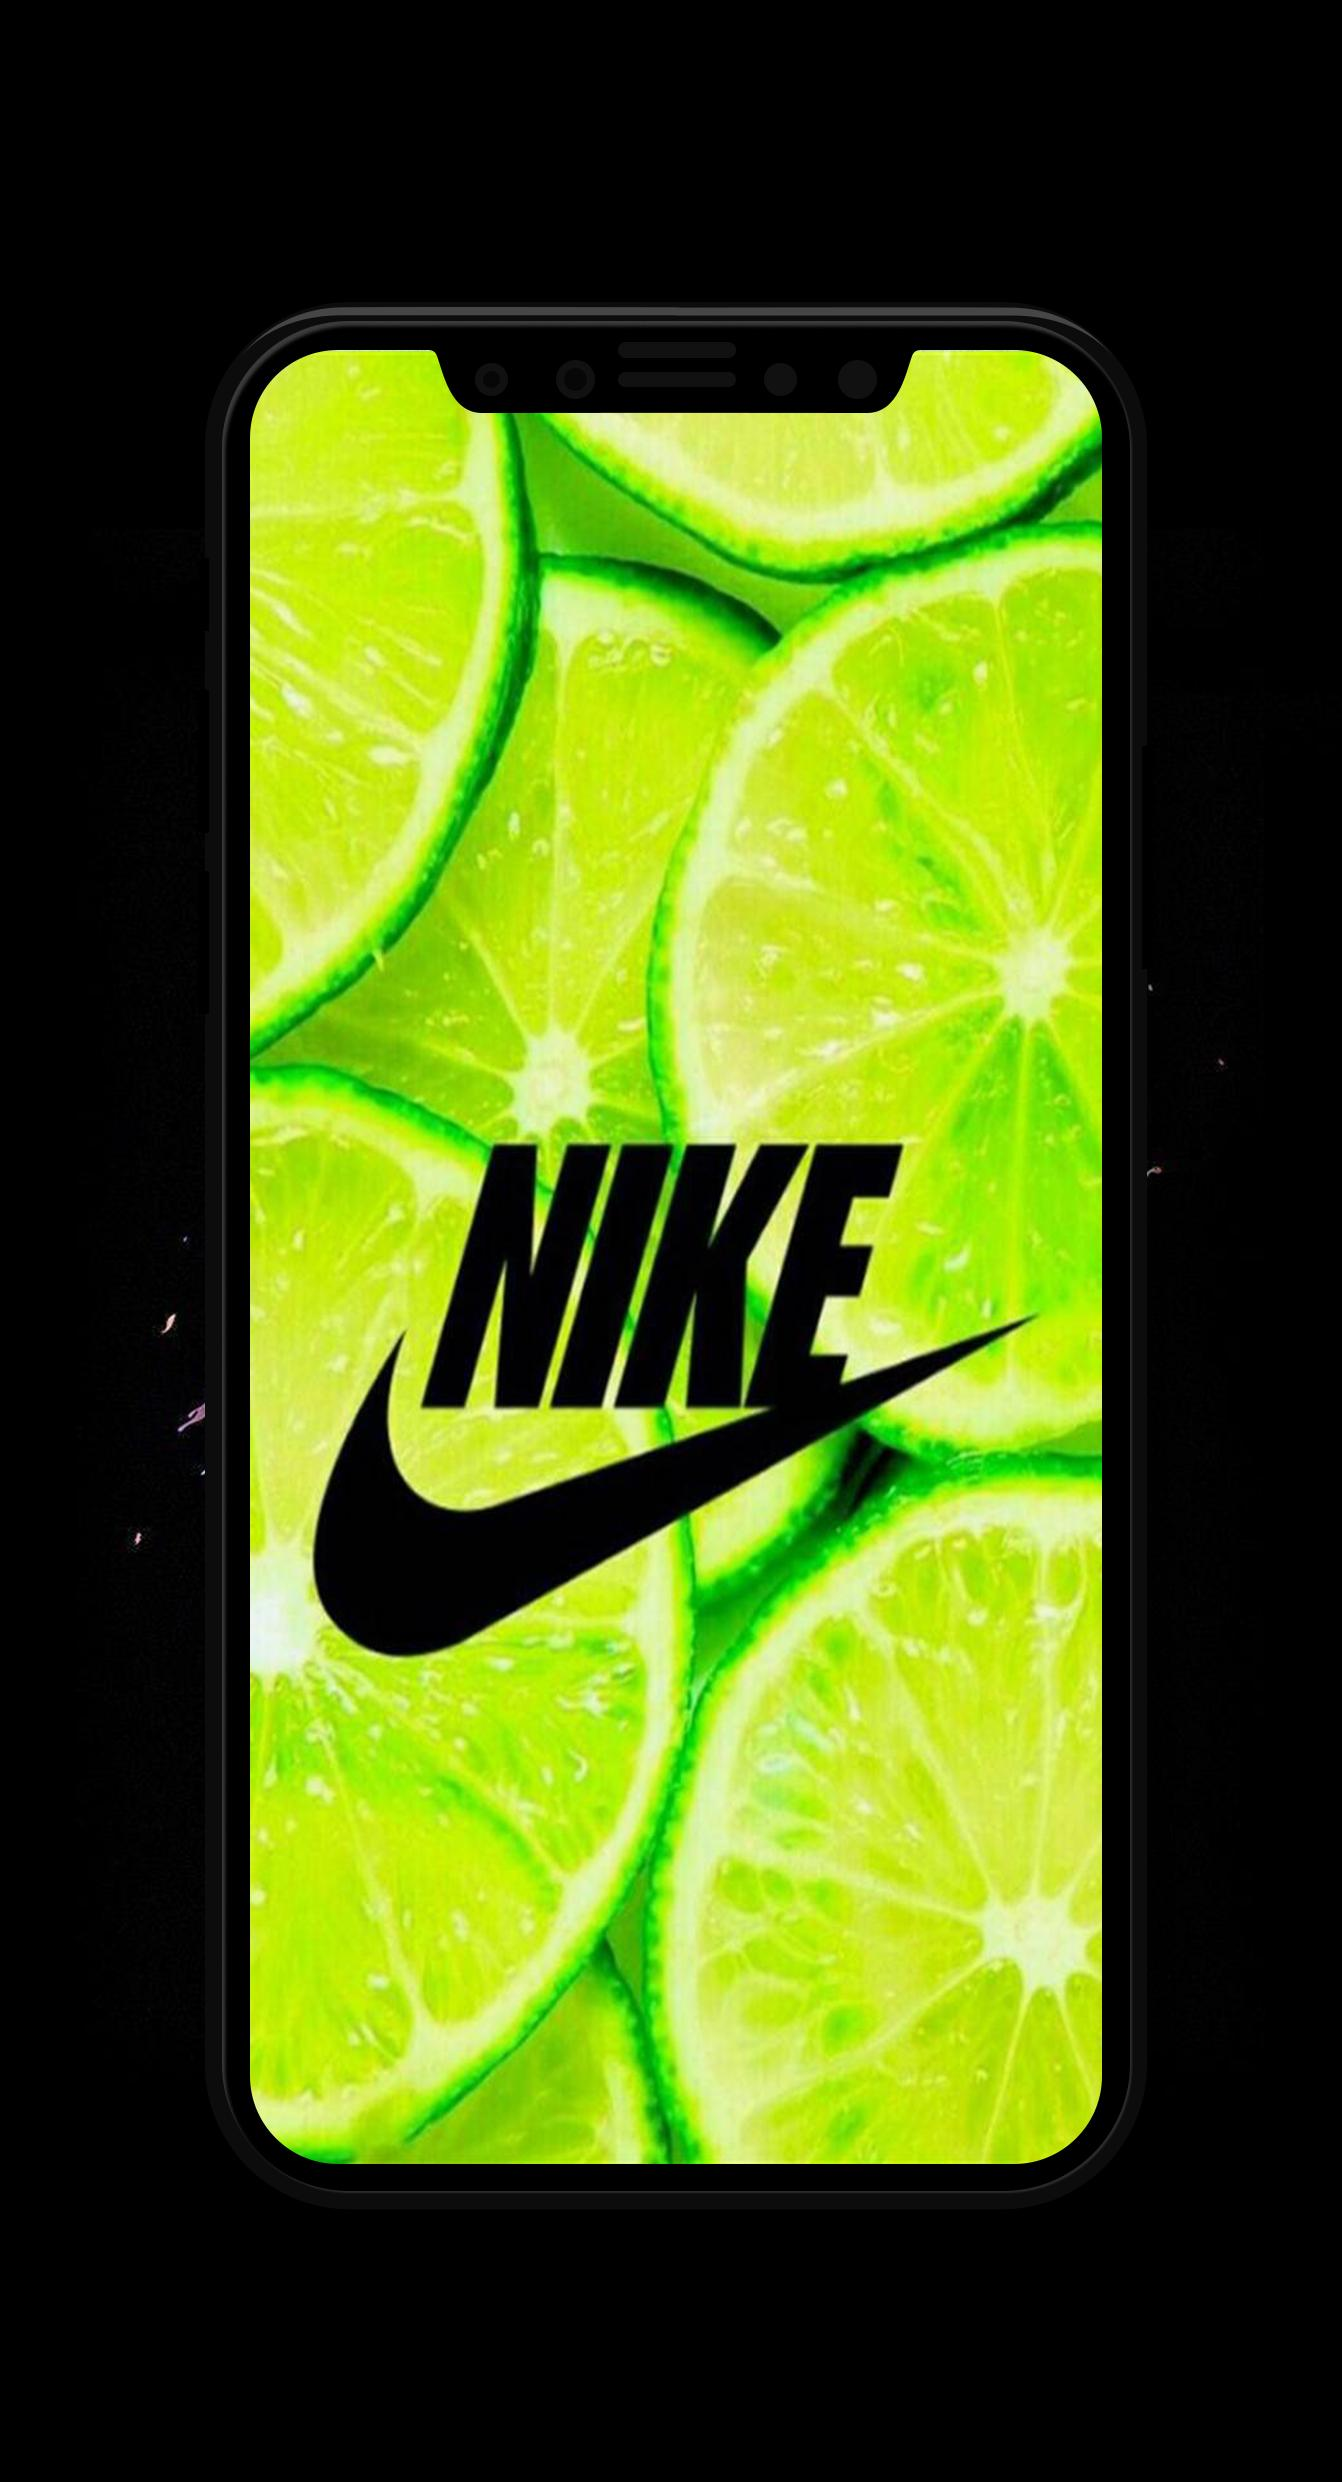 Just Do It Wallpapers Hd 4k For Android Apk Download